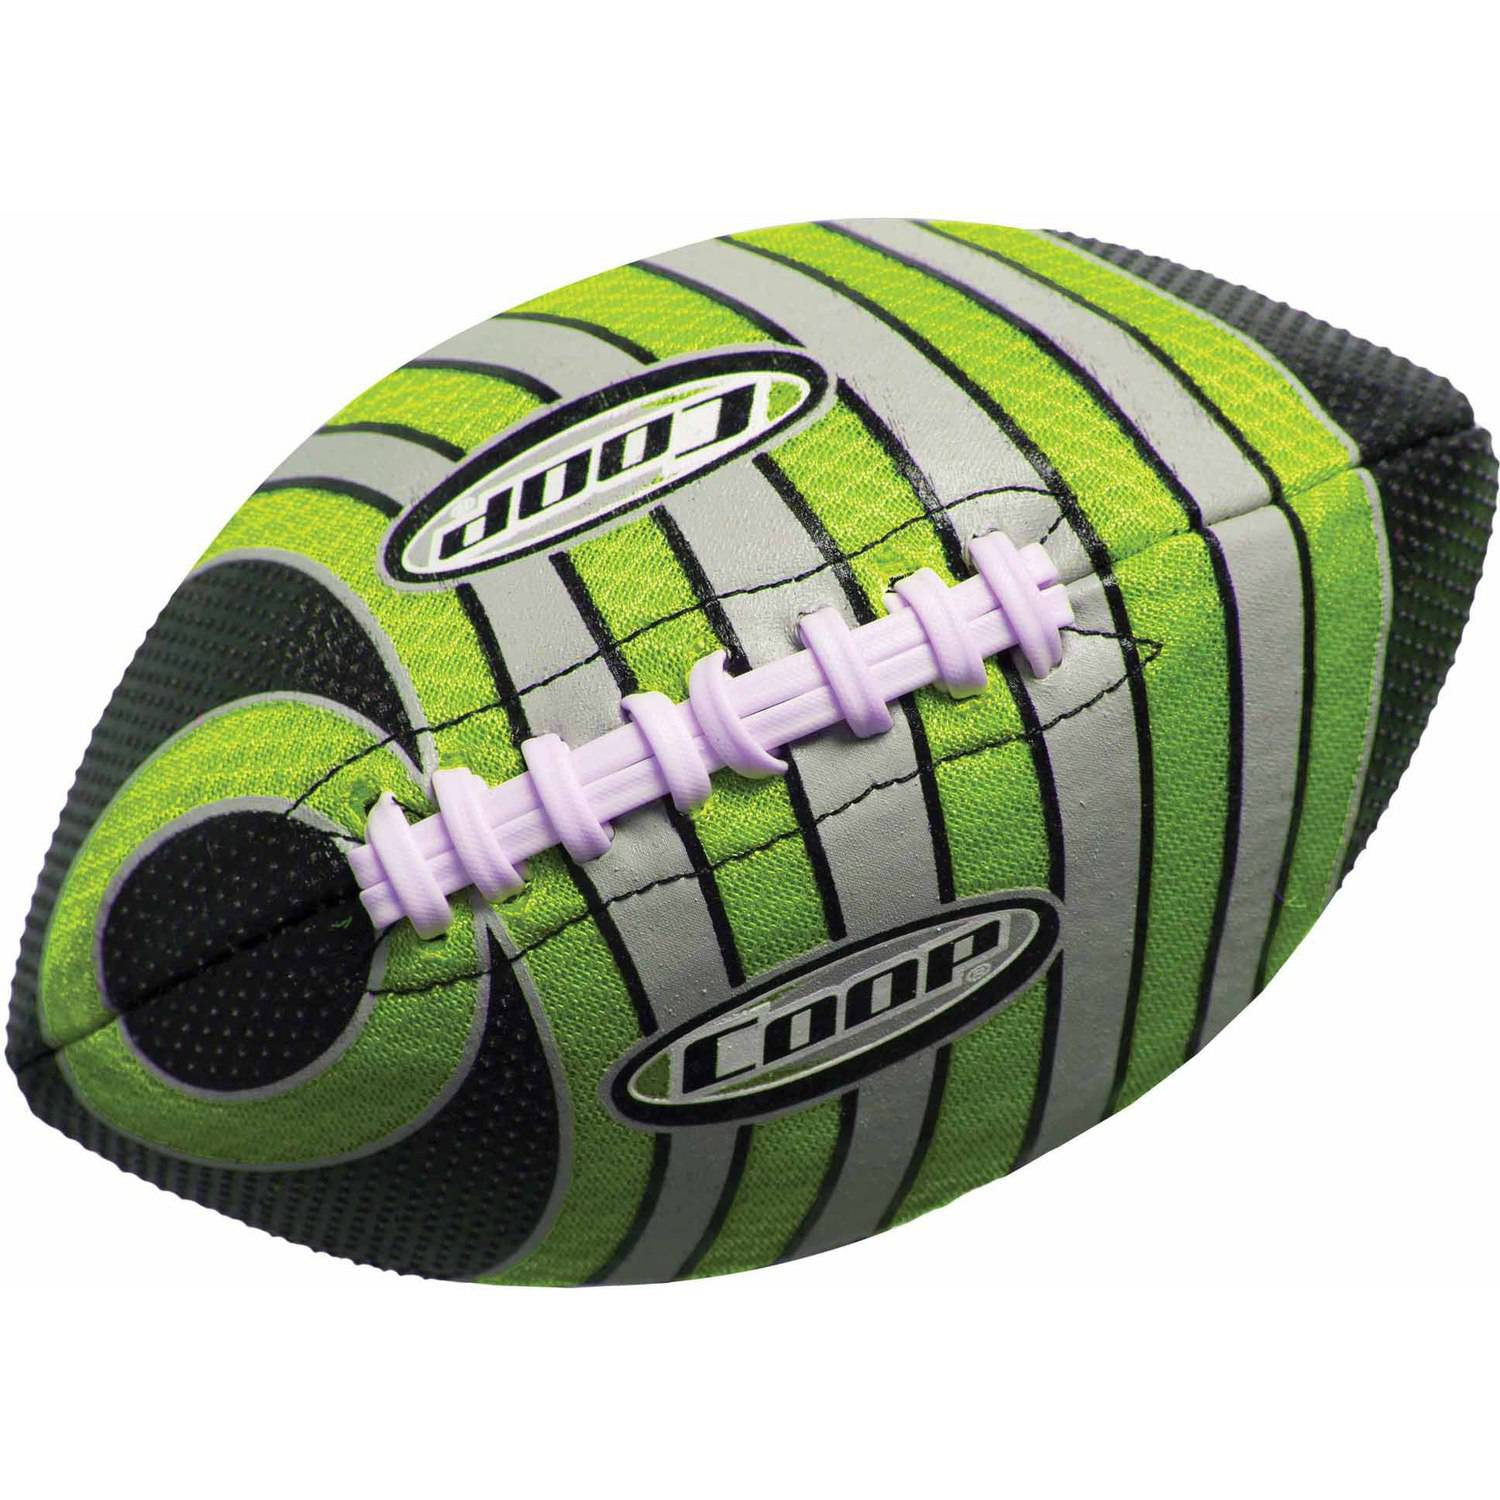 Turbine Football, Green